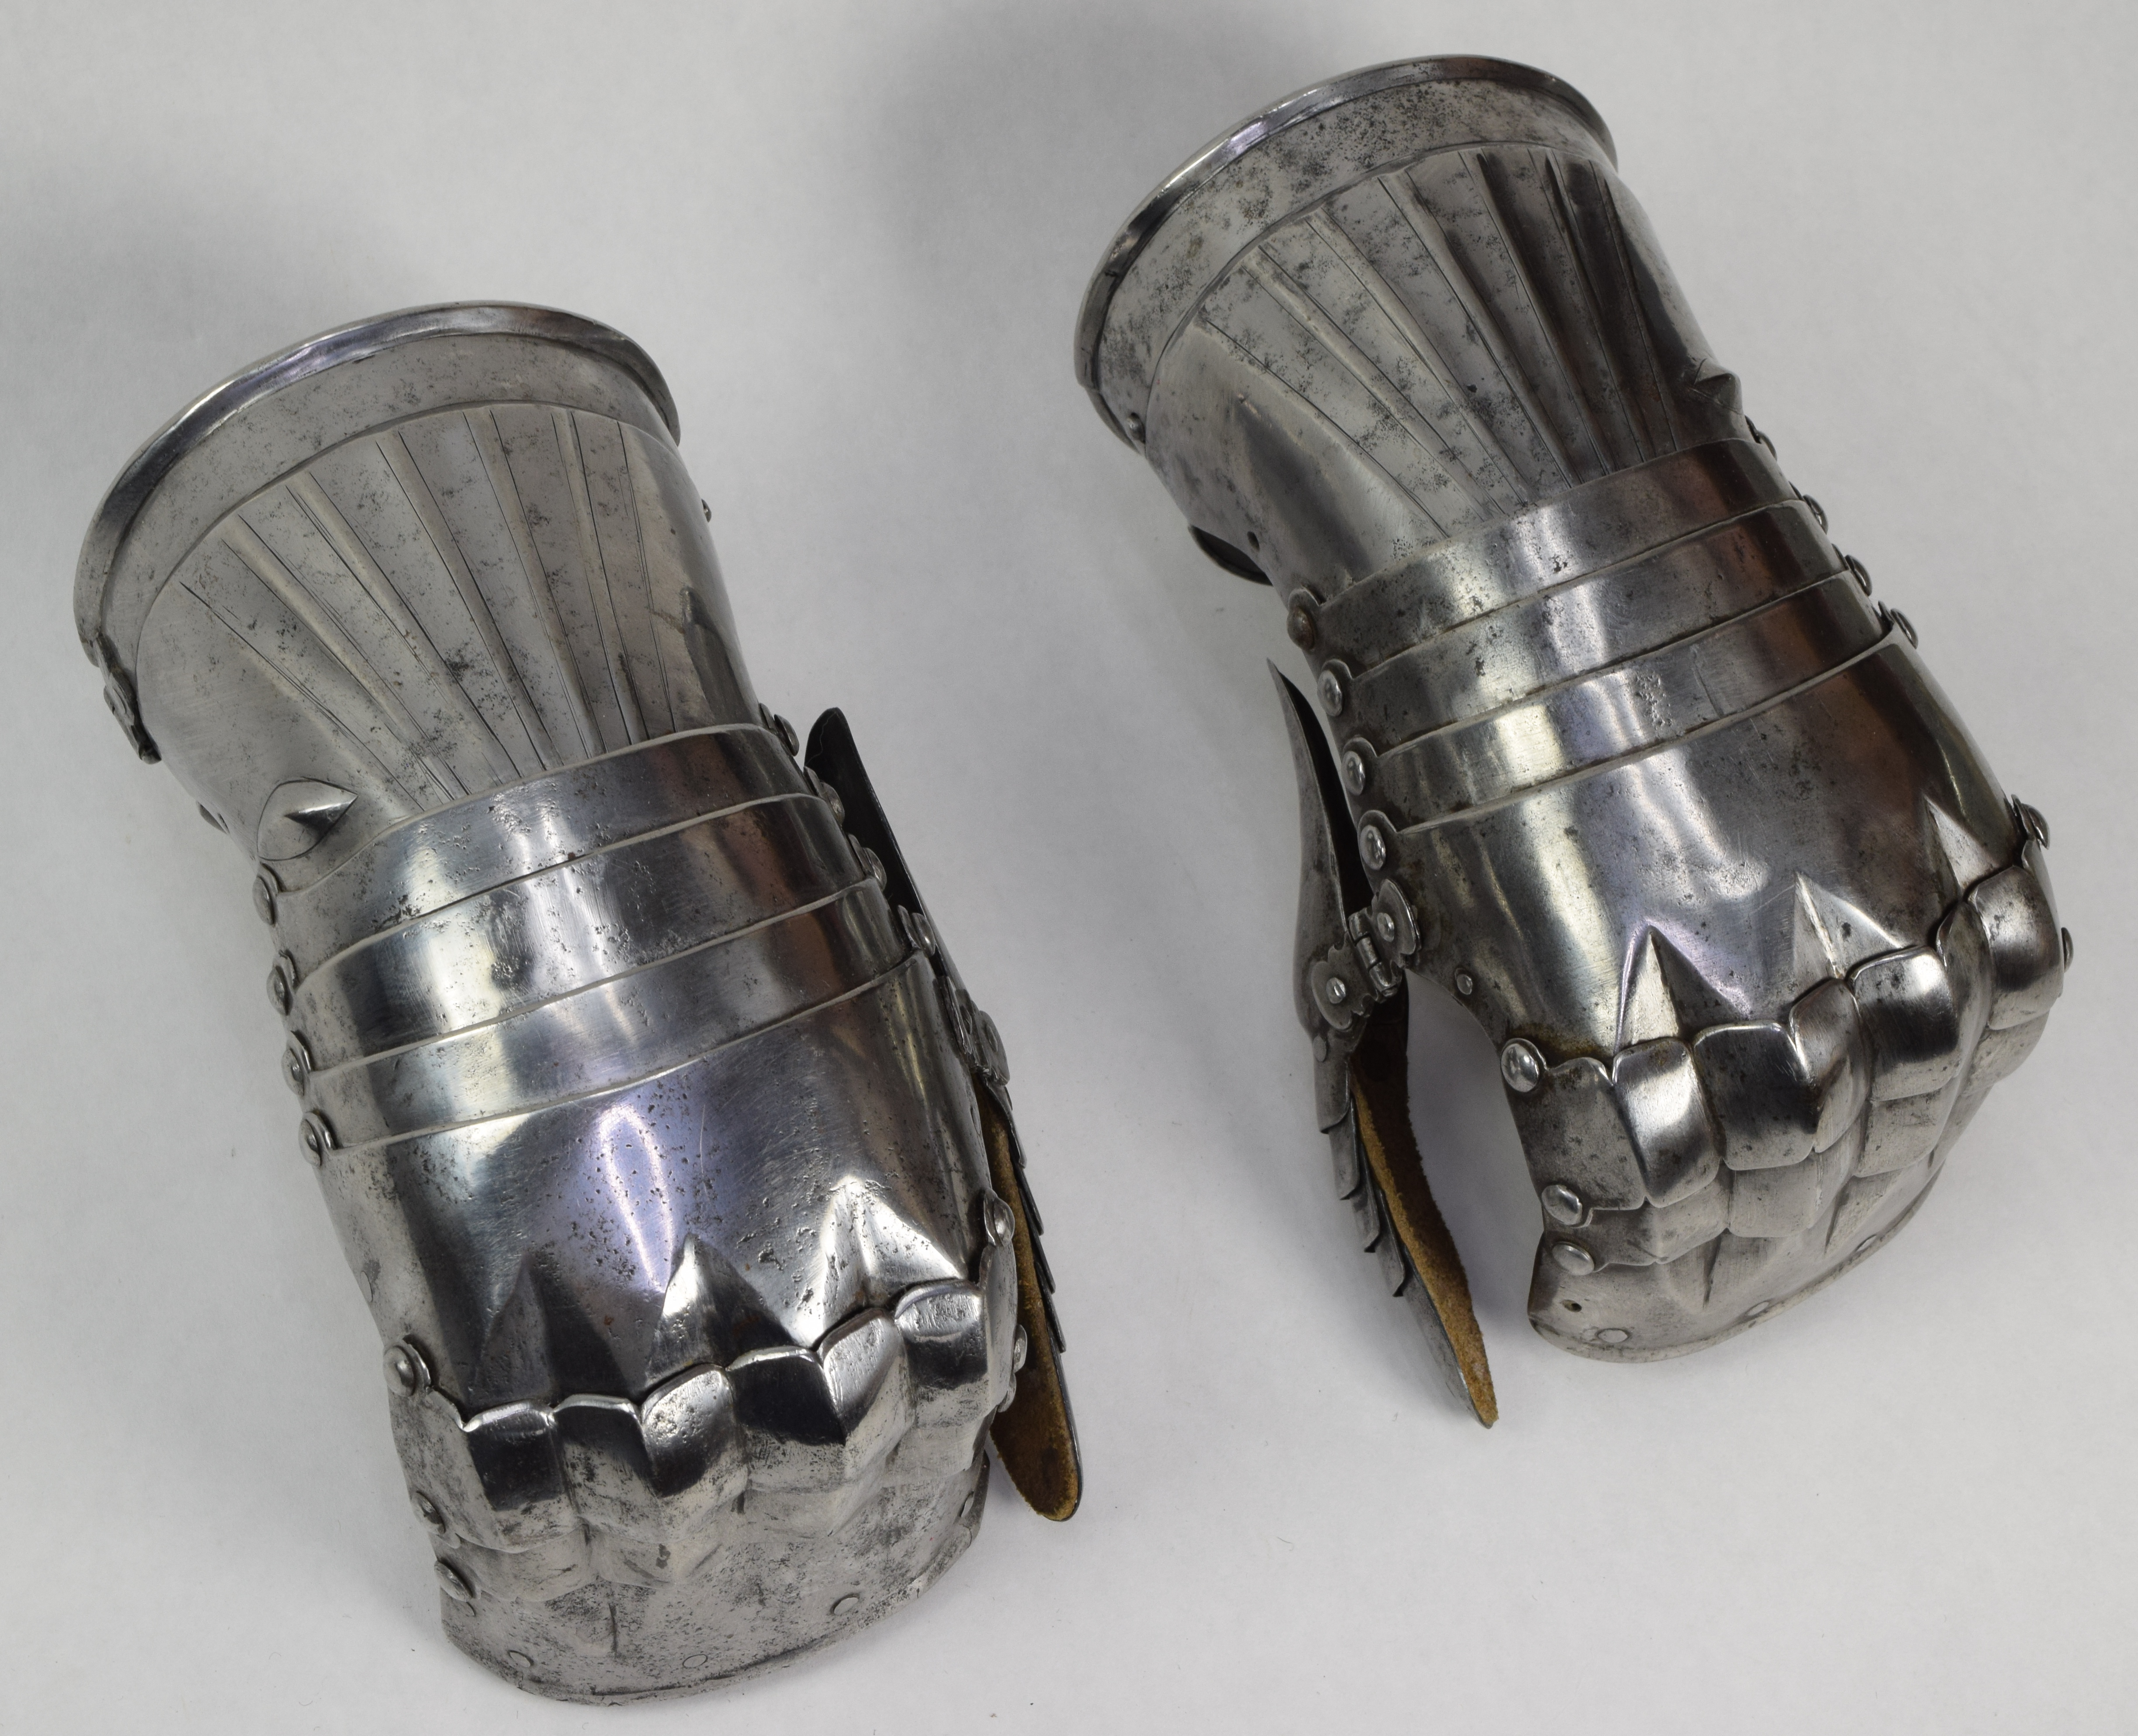 German Gauntlets - A-100-AngleGrey